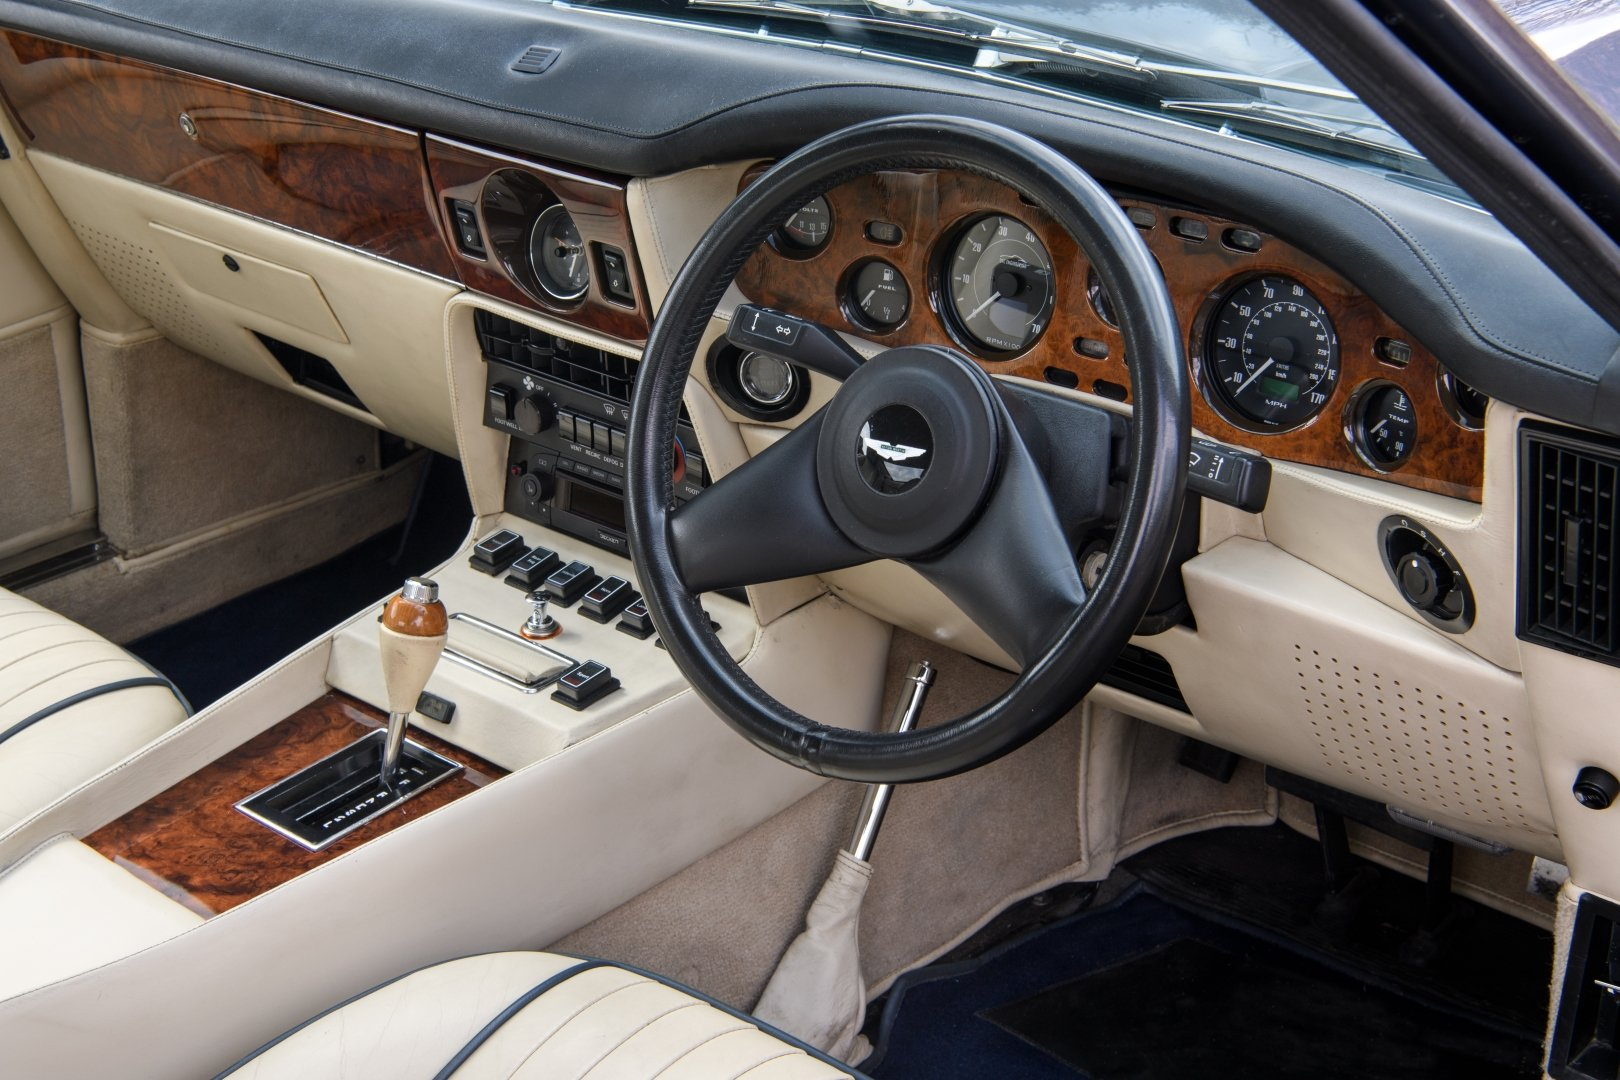 1974 Aston Martin V8 Series 3 Coupe - 'Oscar India' Spec For Sale (picture 3 of 6)